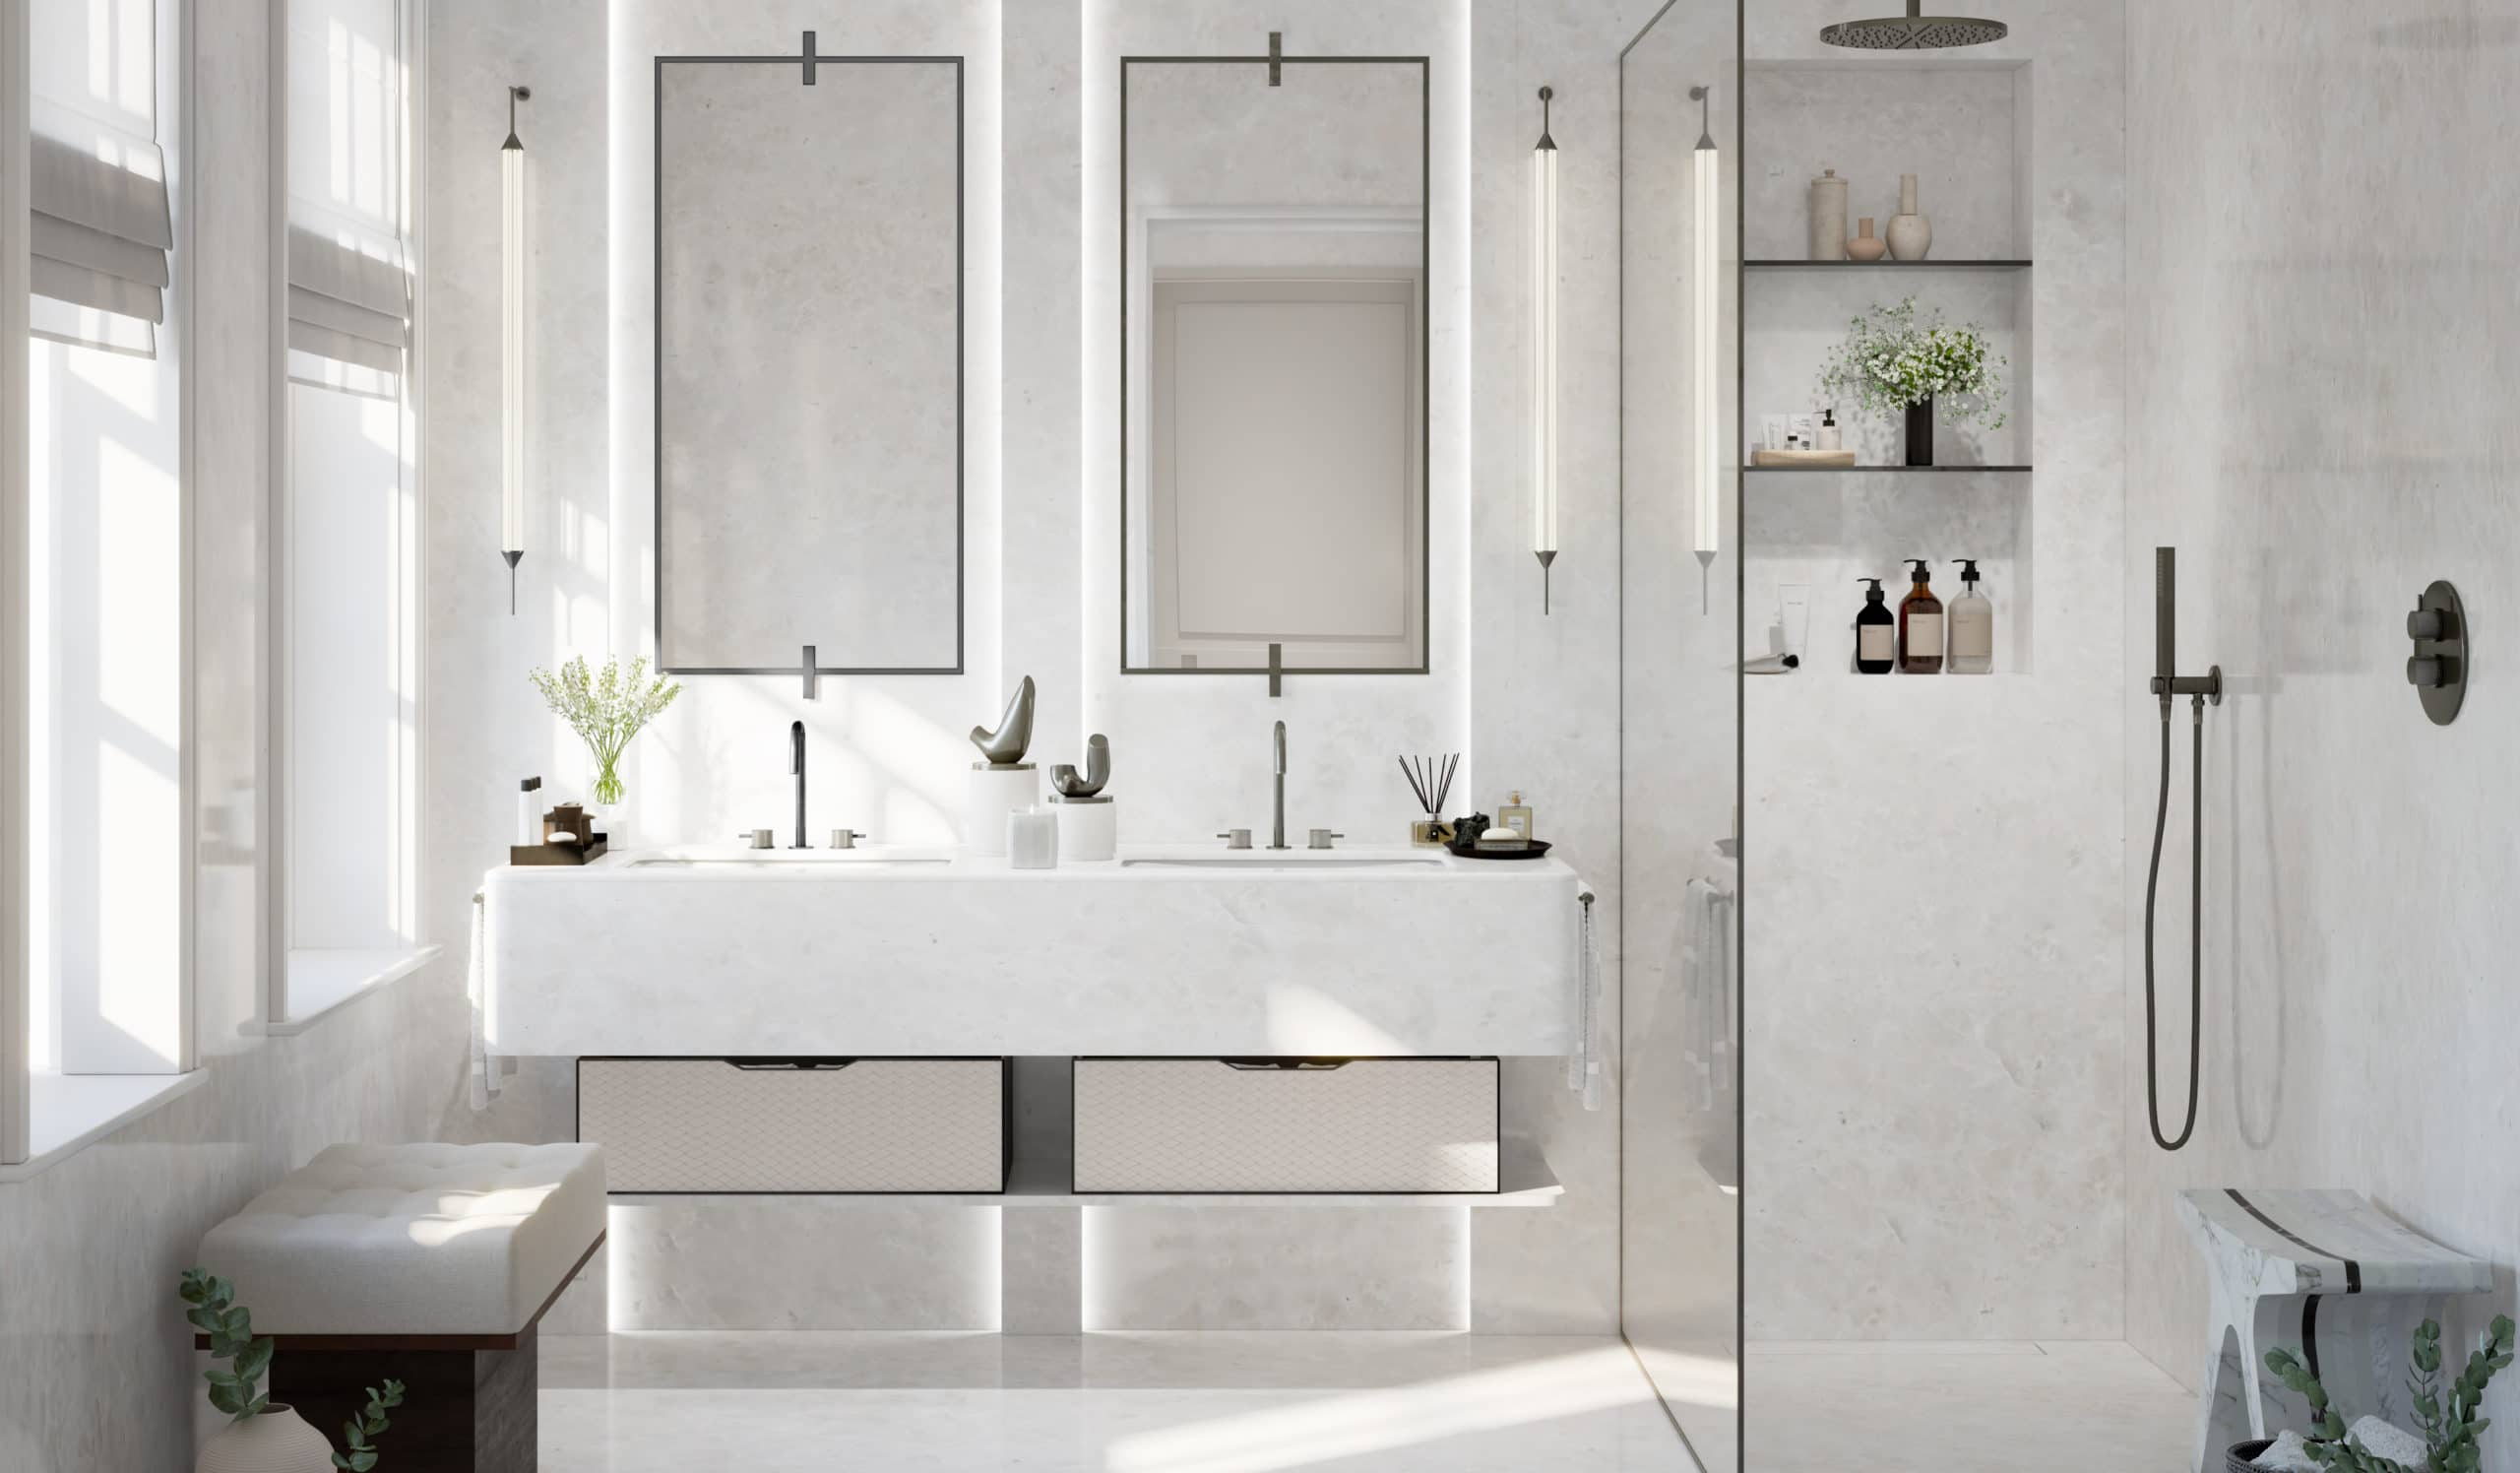 Master bathroom at 82 Mount Street apartments in London. All white with double vanity with mirrors and standing shower.